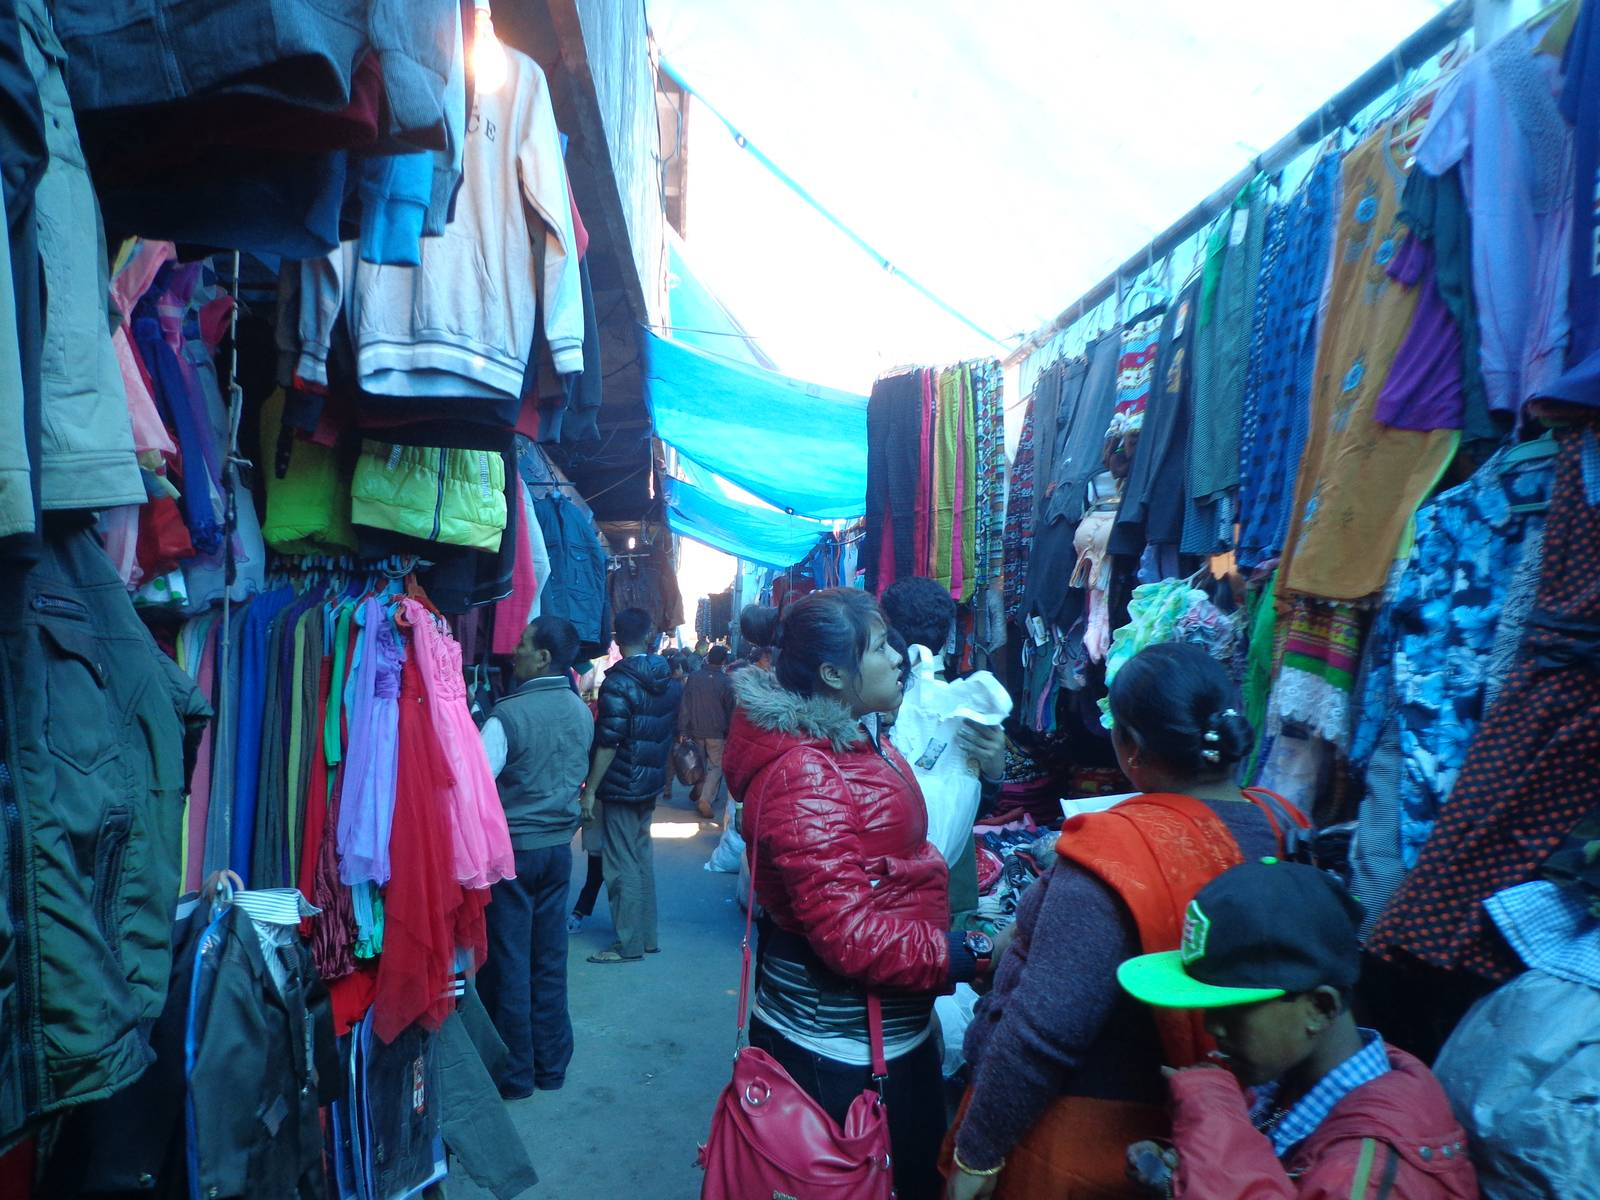 A busy and narrow alley at Hong Kong market, Dimapur.